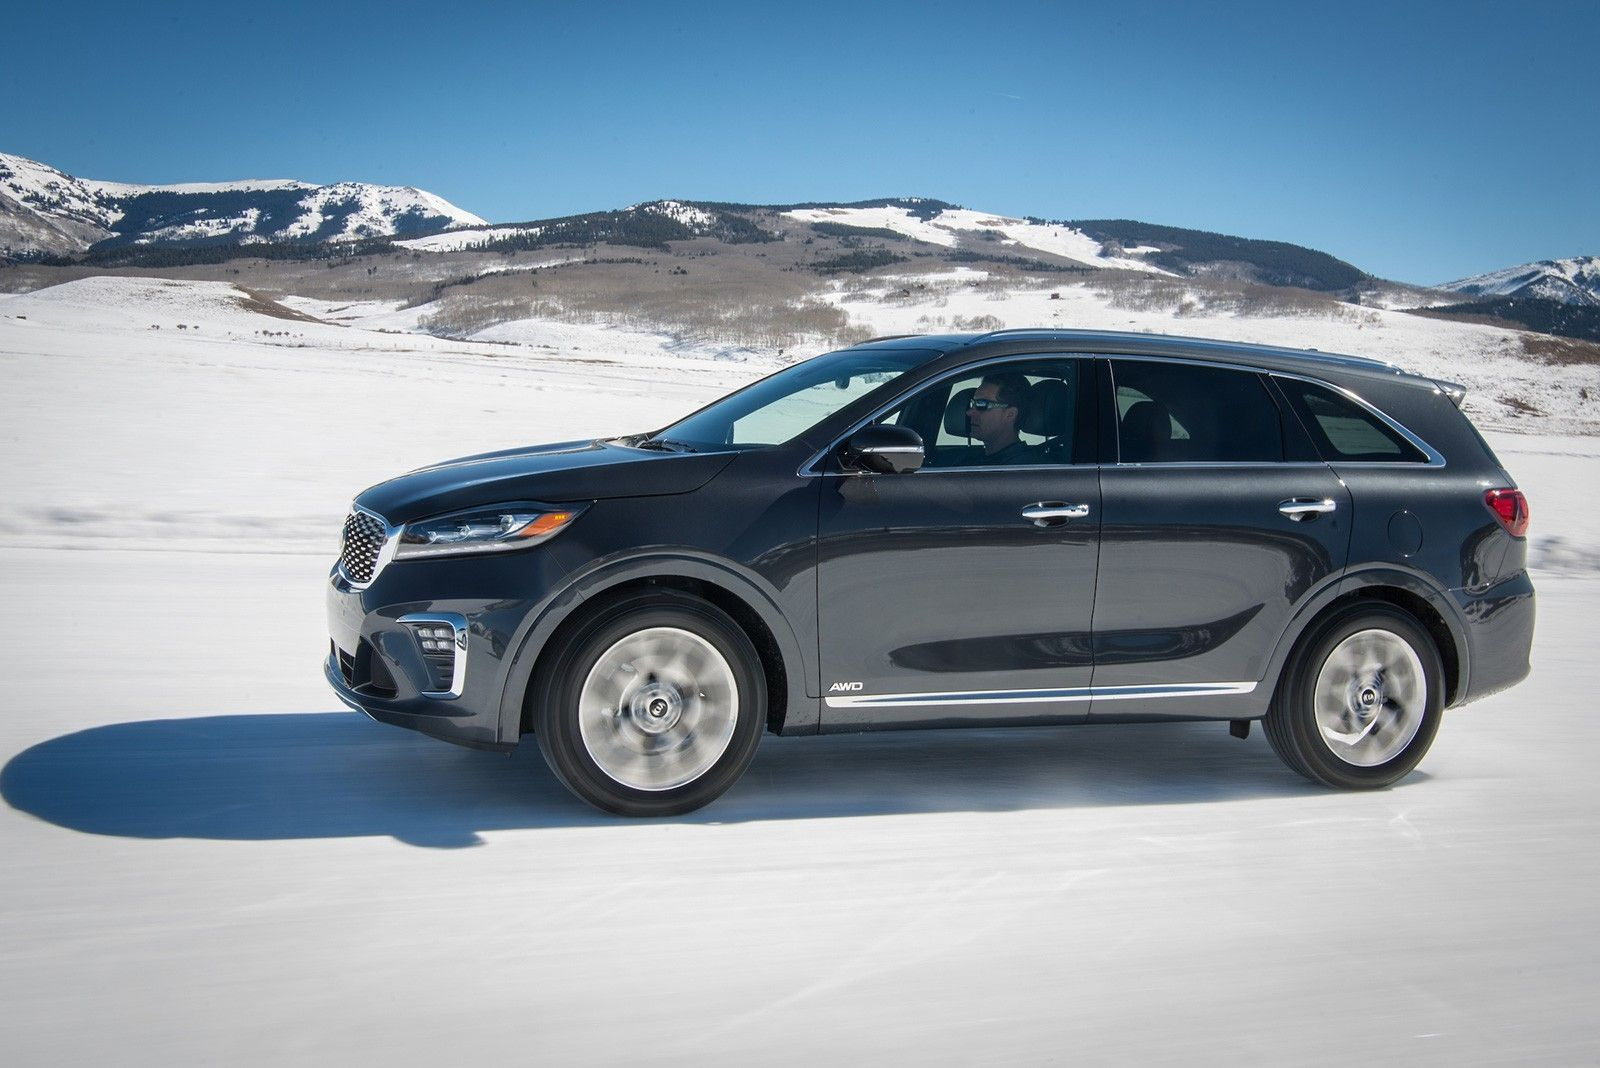 New 2019 Kia Sorento Msrp First Drive Megafilm Movies Pinterest